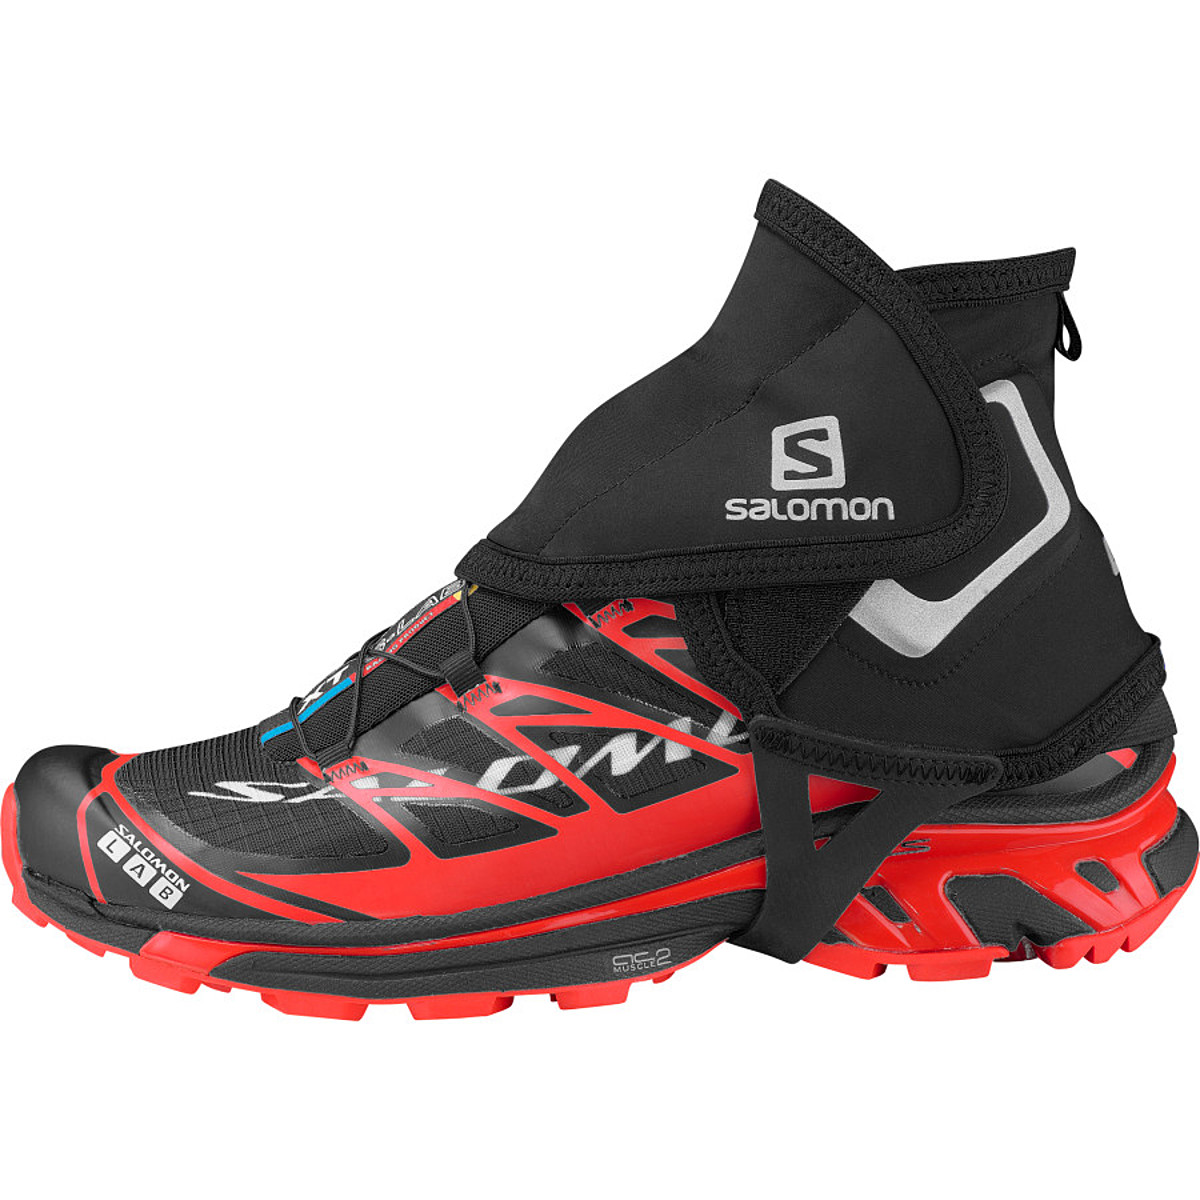 Salomon S Lab Gaiters